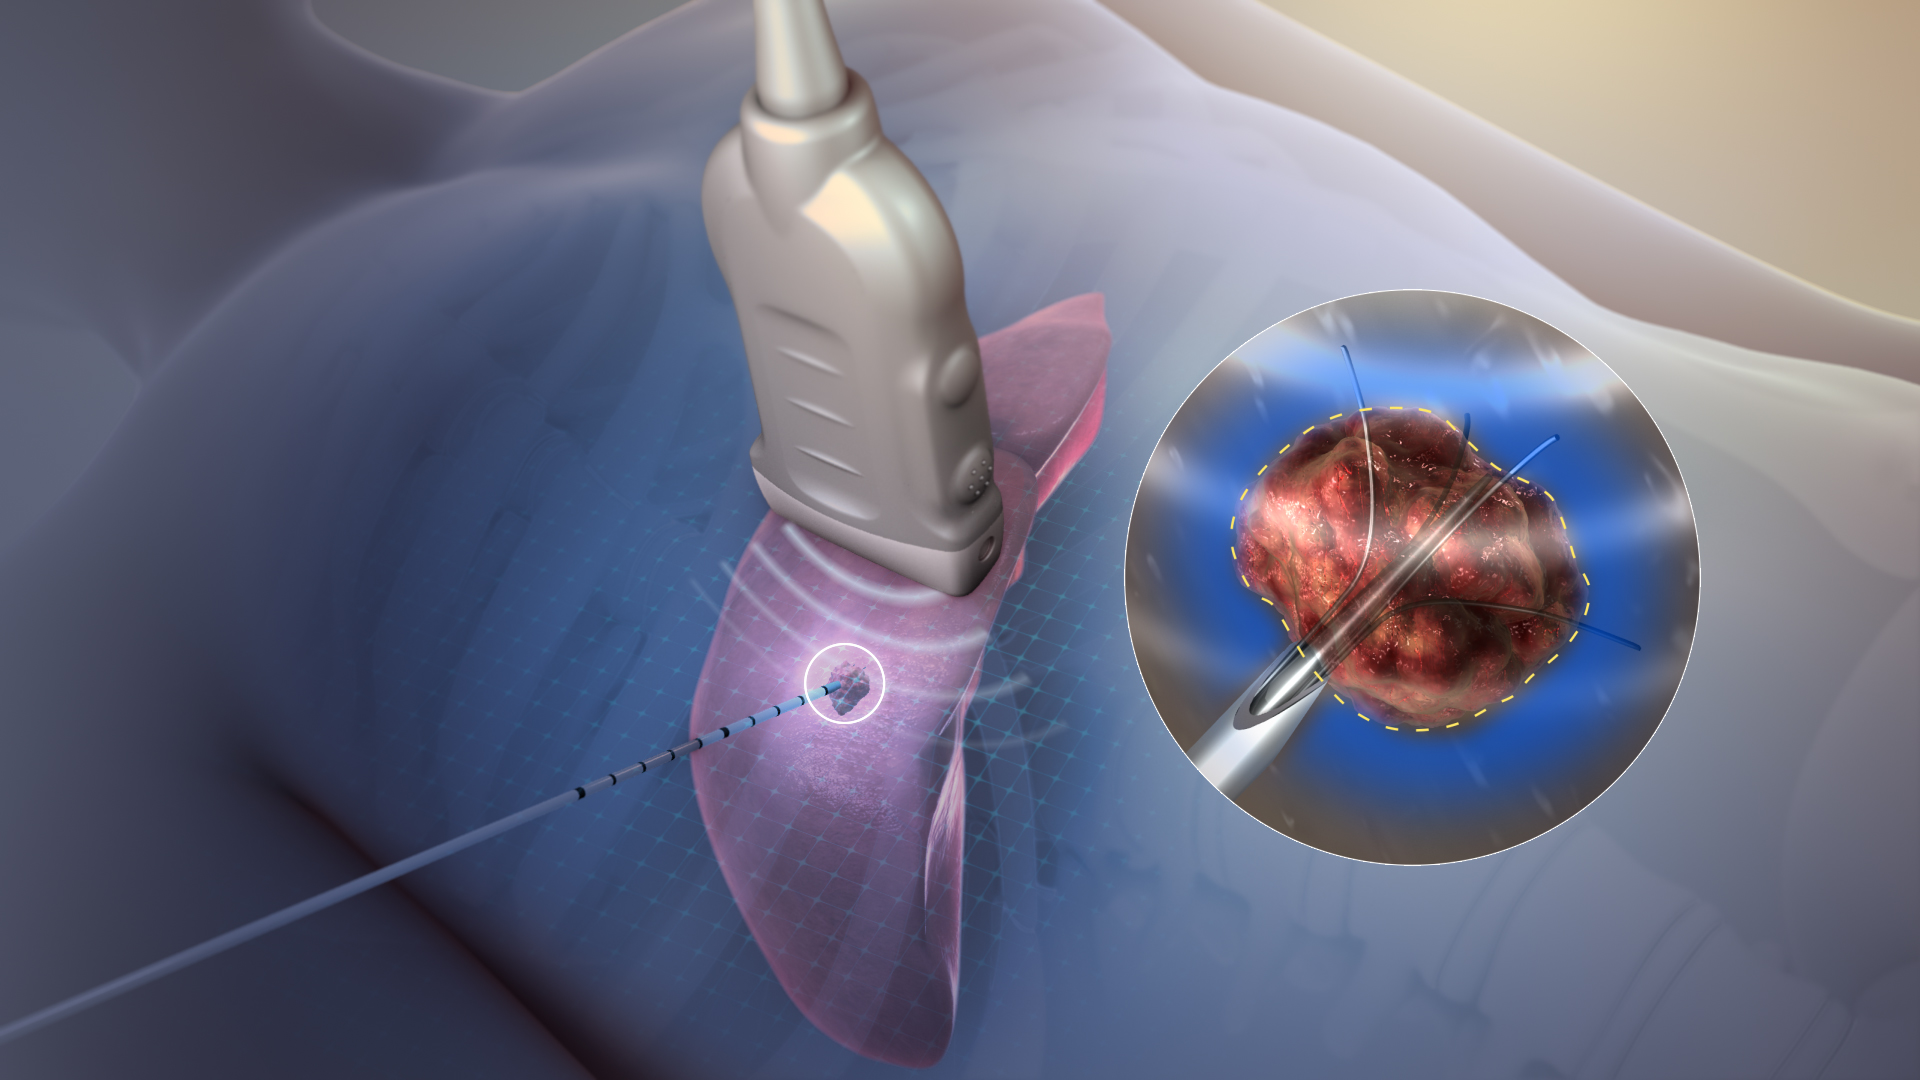 Radiofrequency ablation - Wikipedia